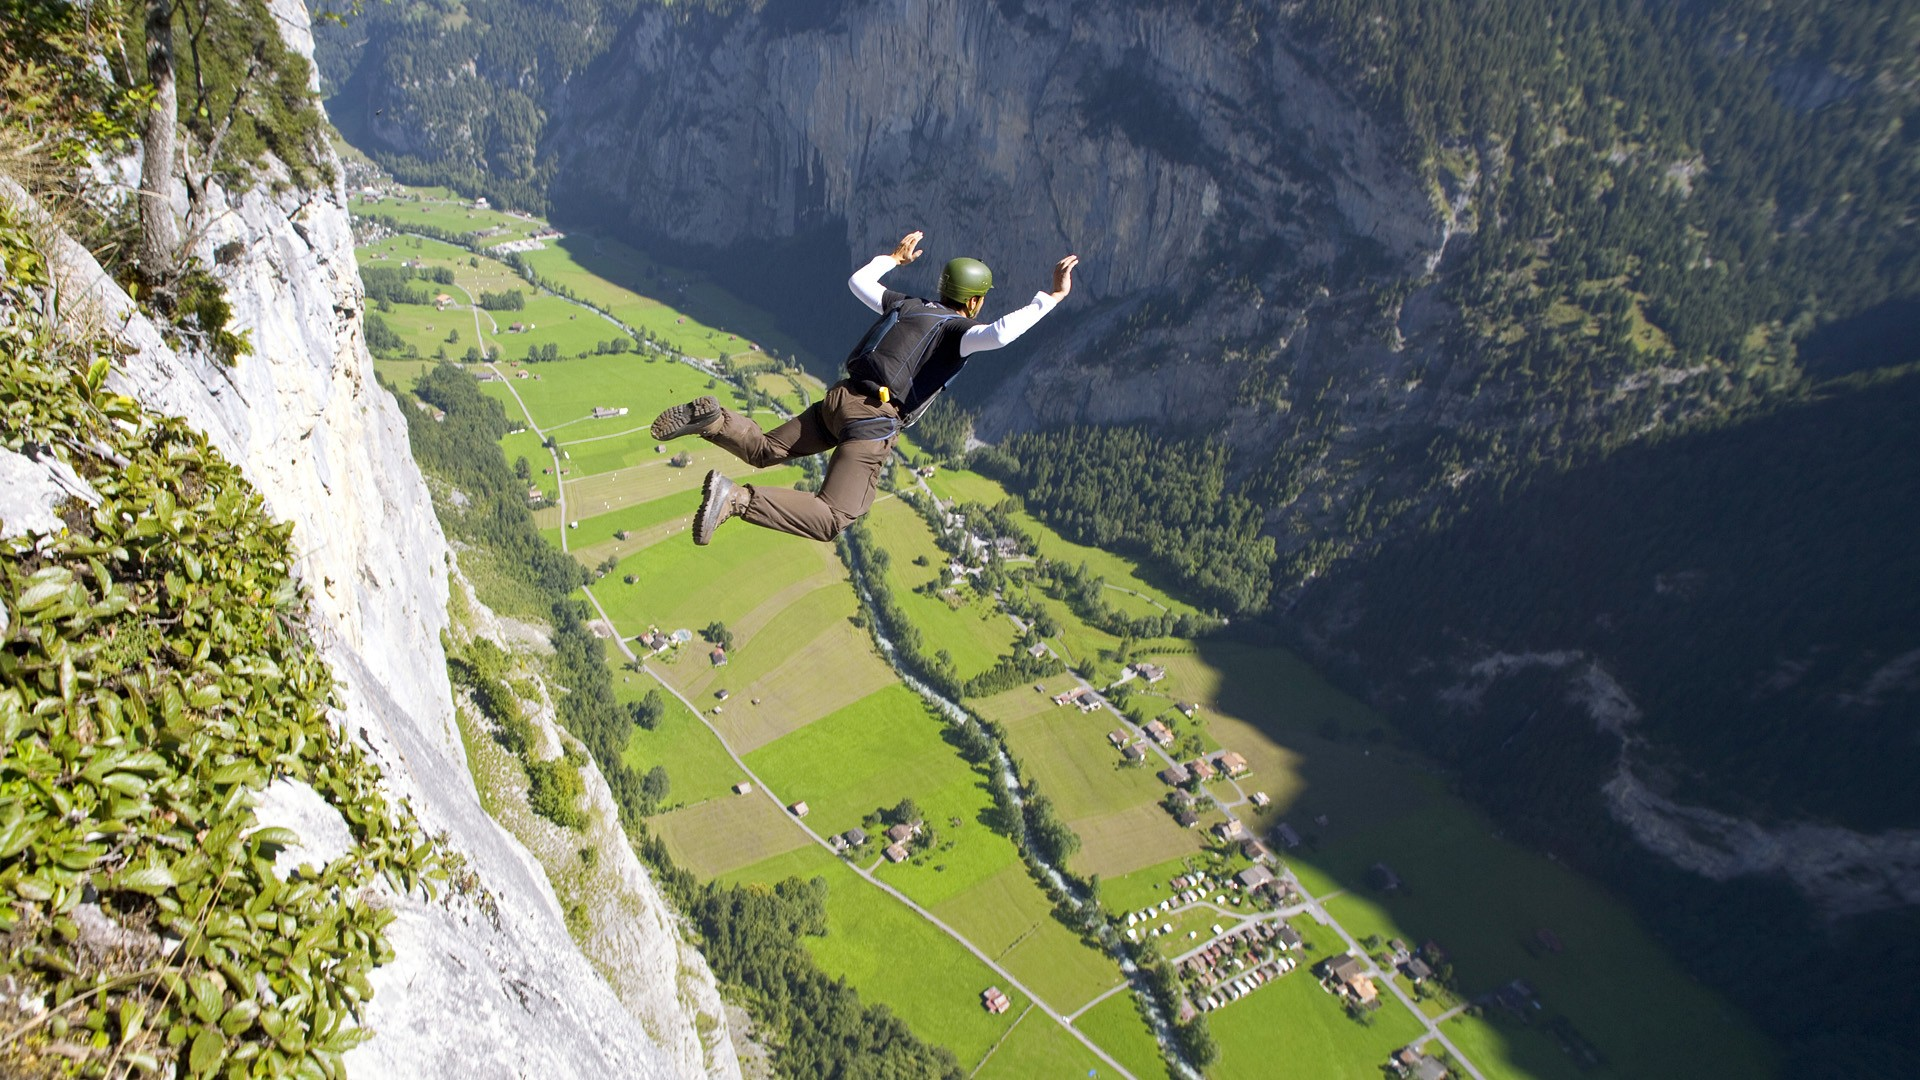 Base Jumping Images YOLO!